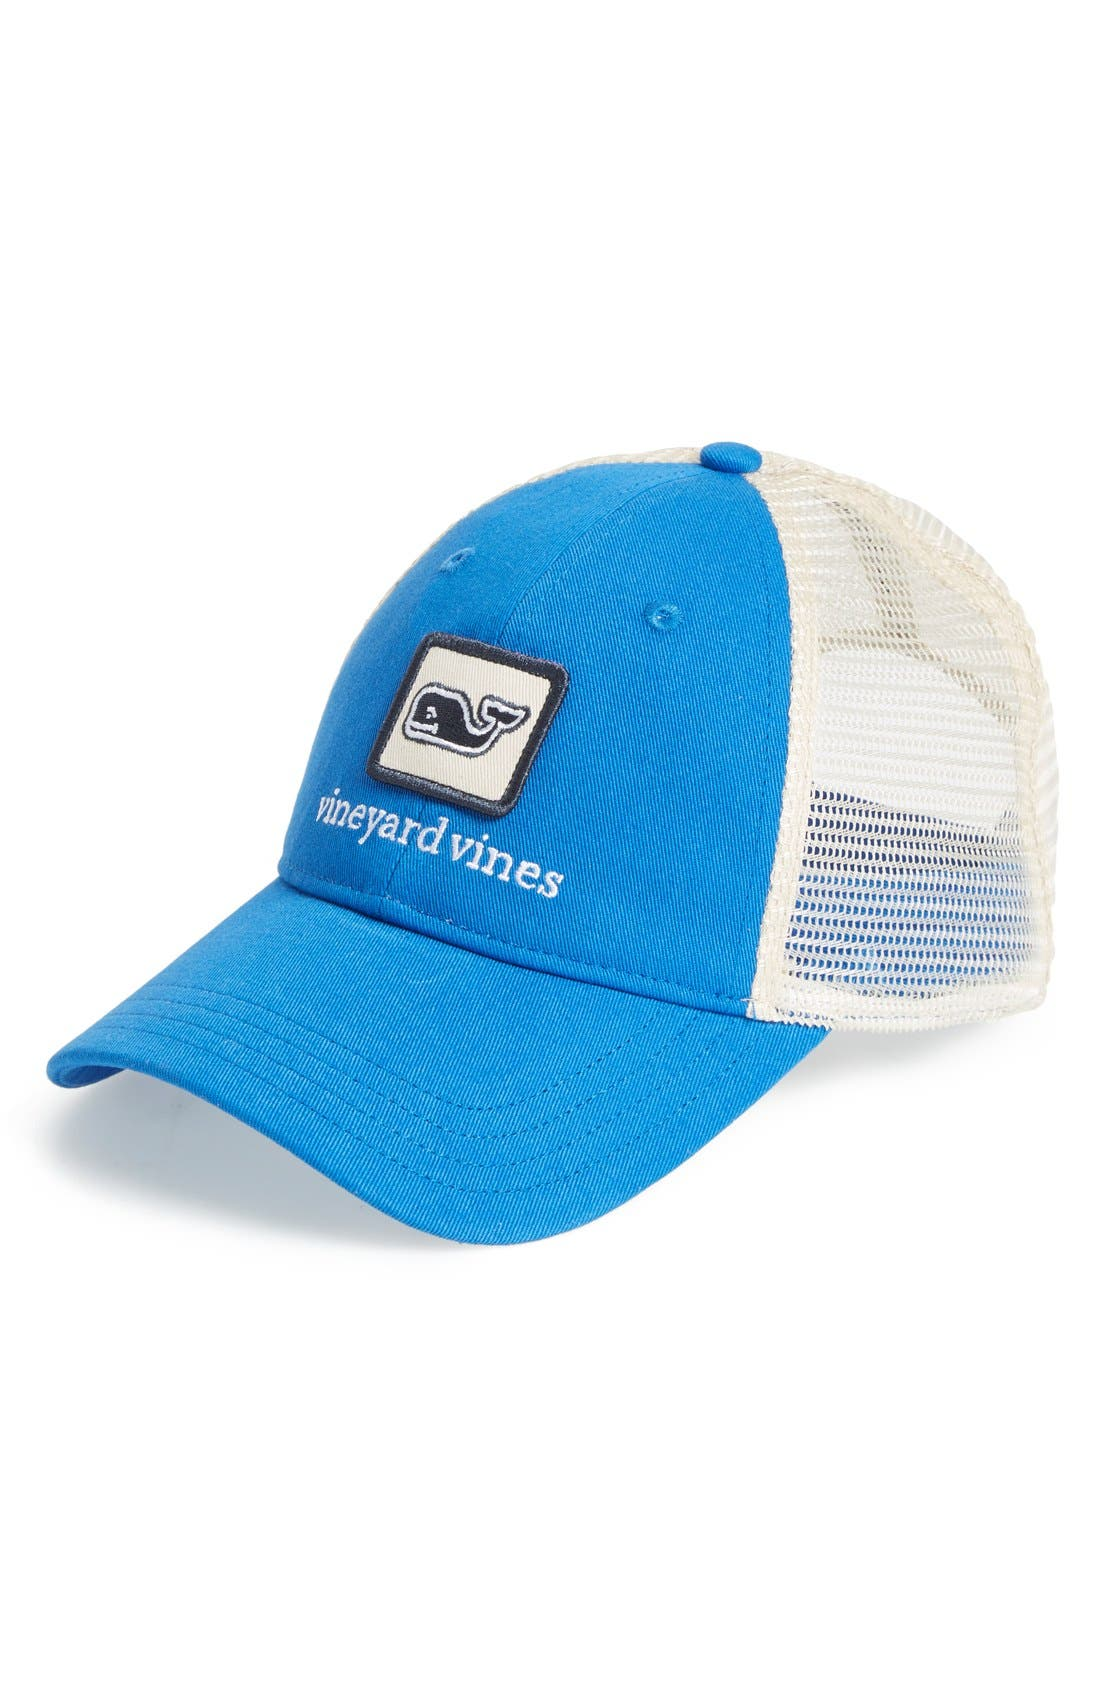 Main Image - Vineyard Vines Whale Patch Trucker Hat